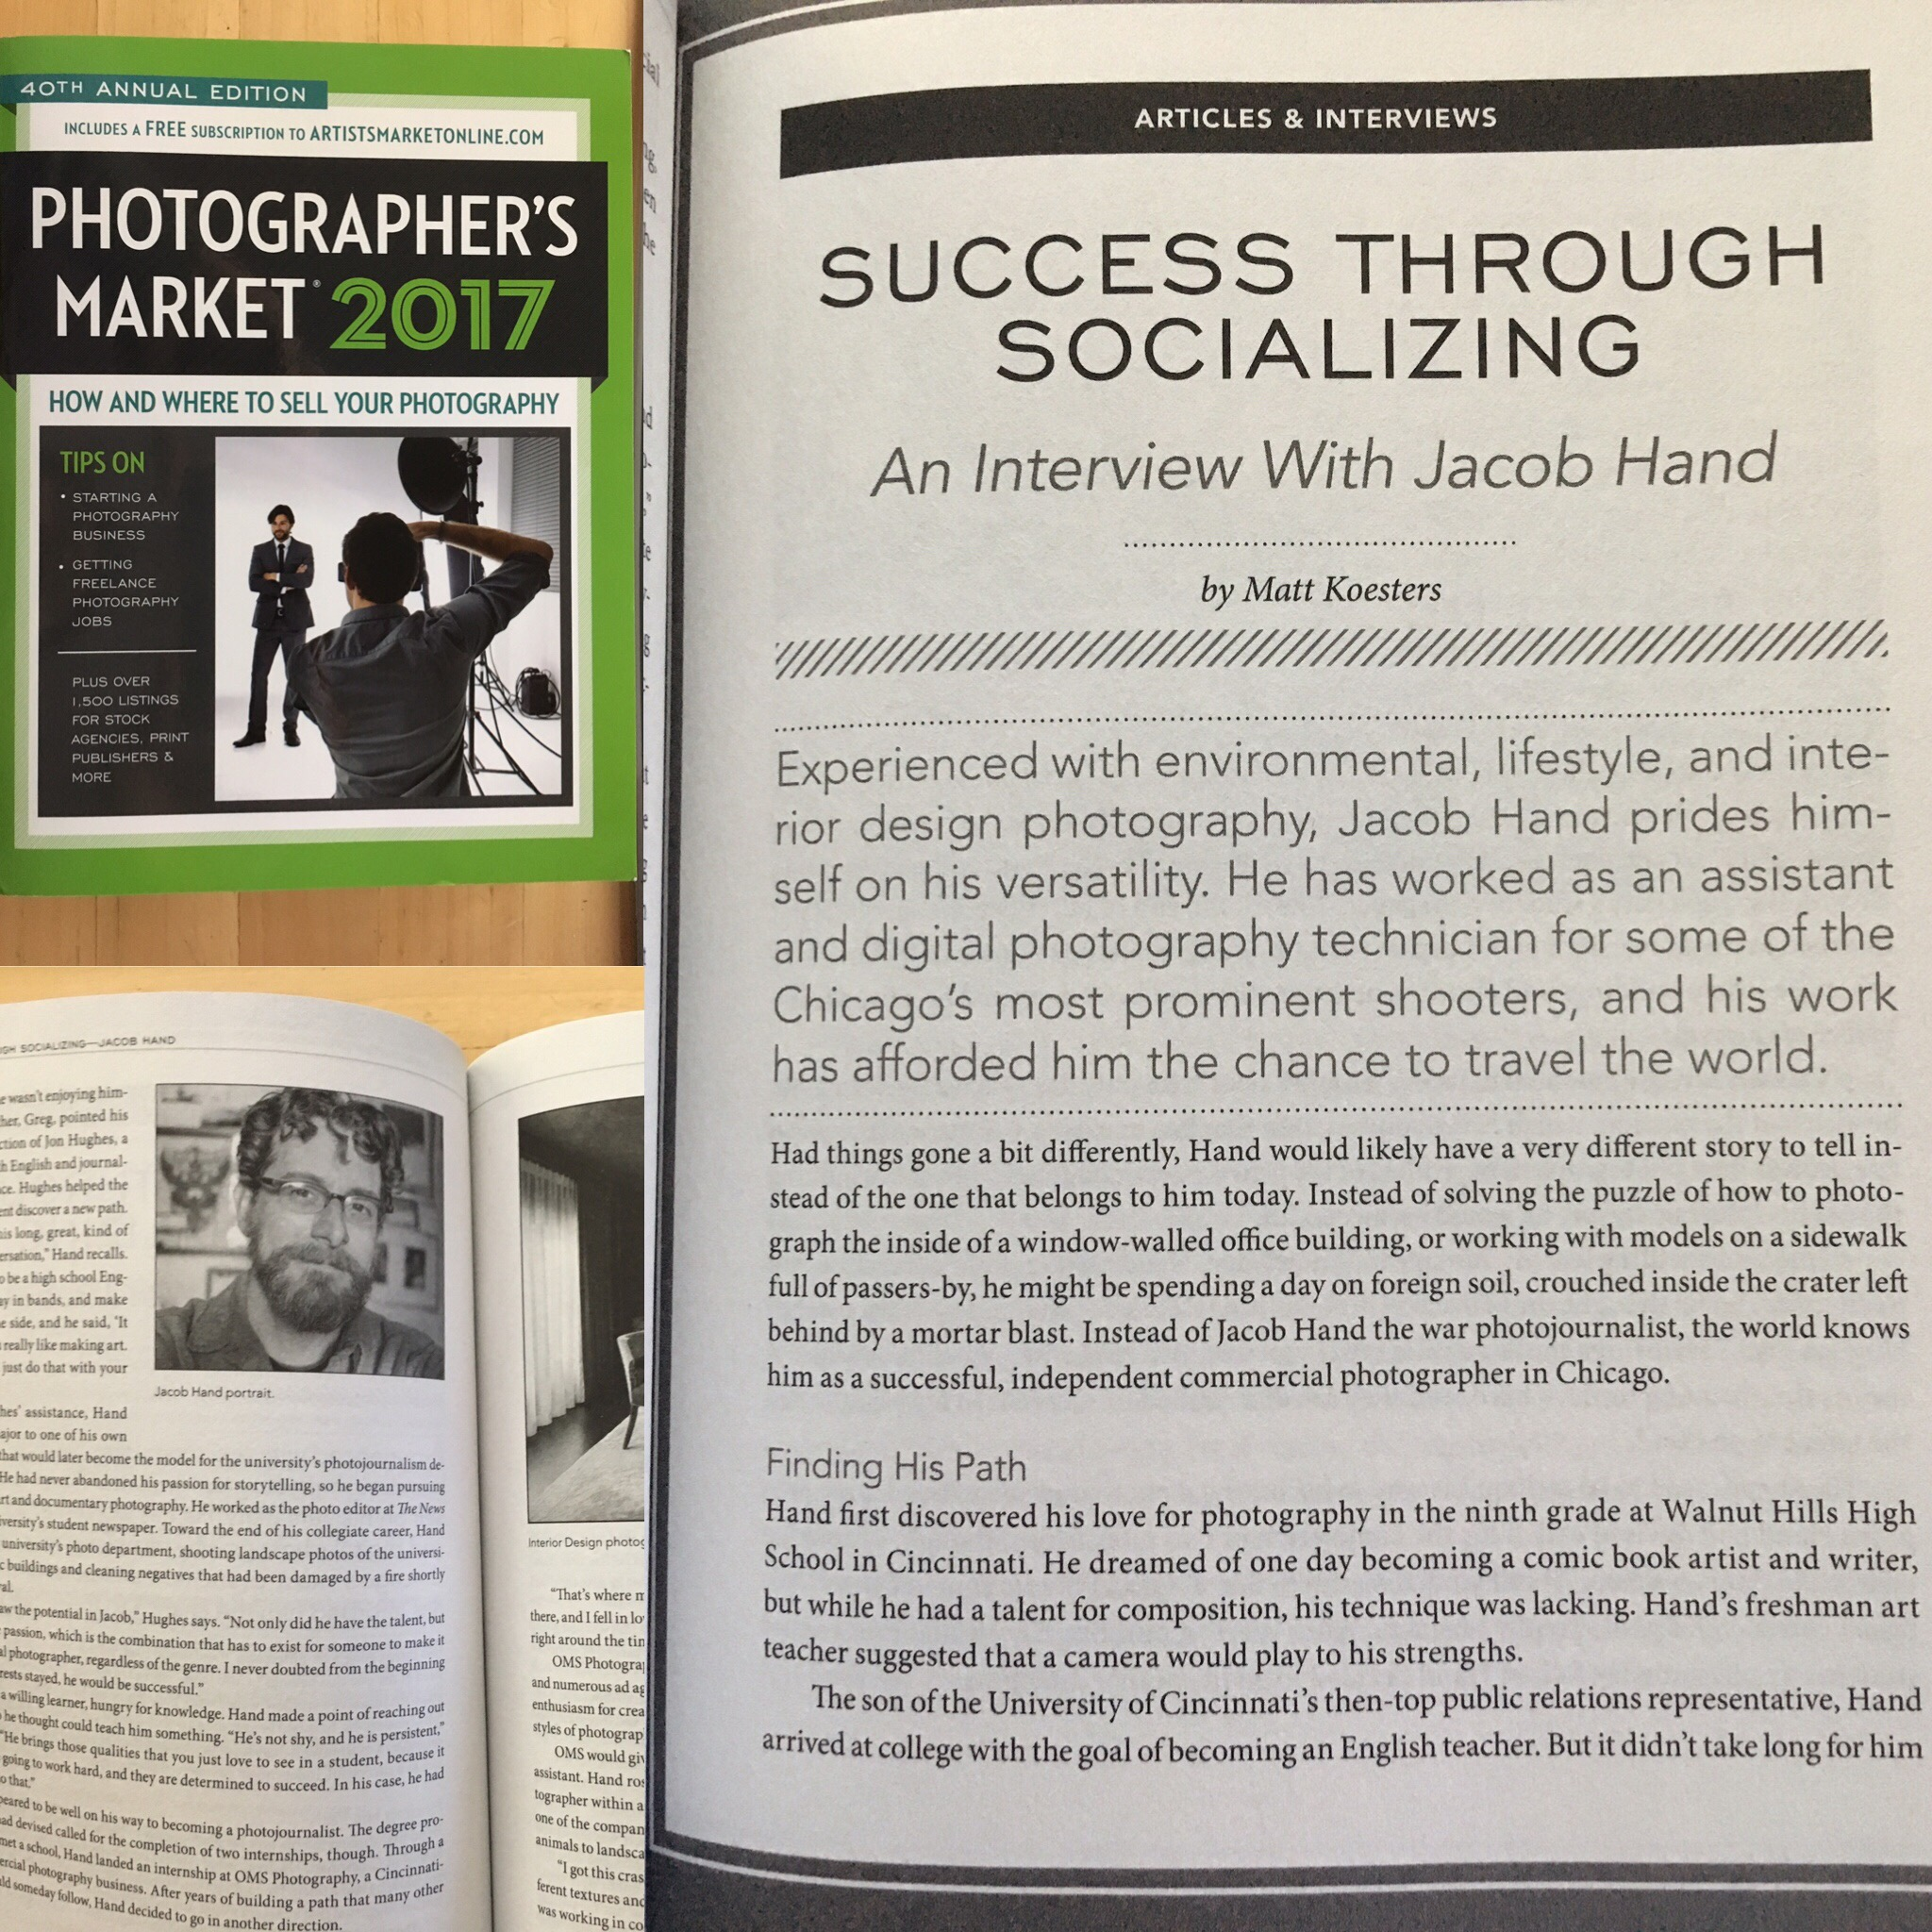 Jacob Hand is featured in Photographer's Market 2017